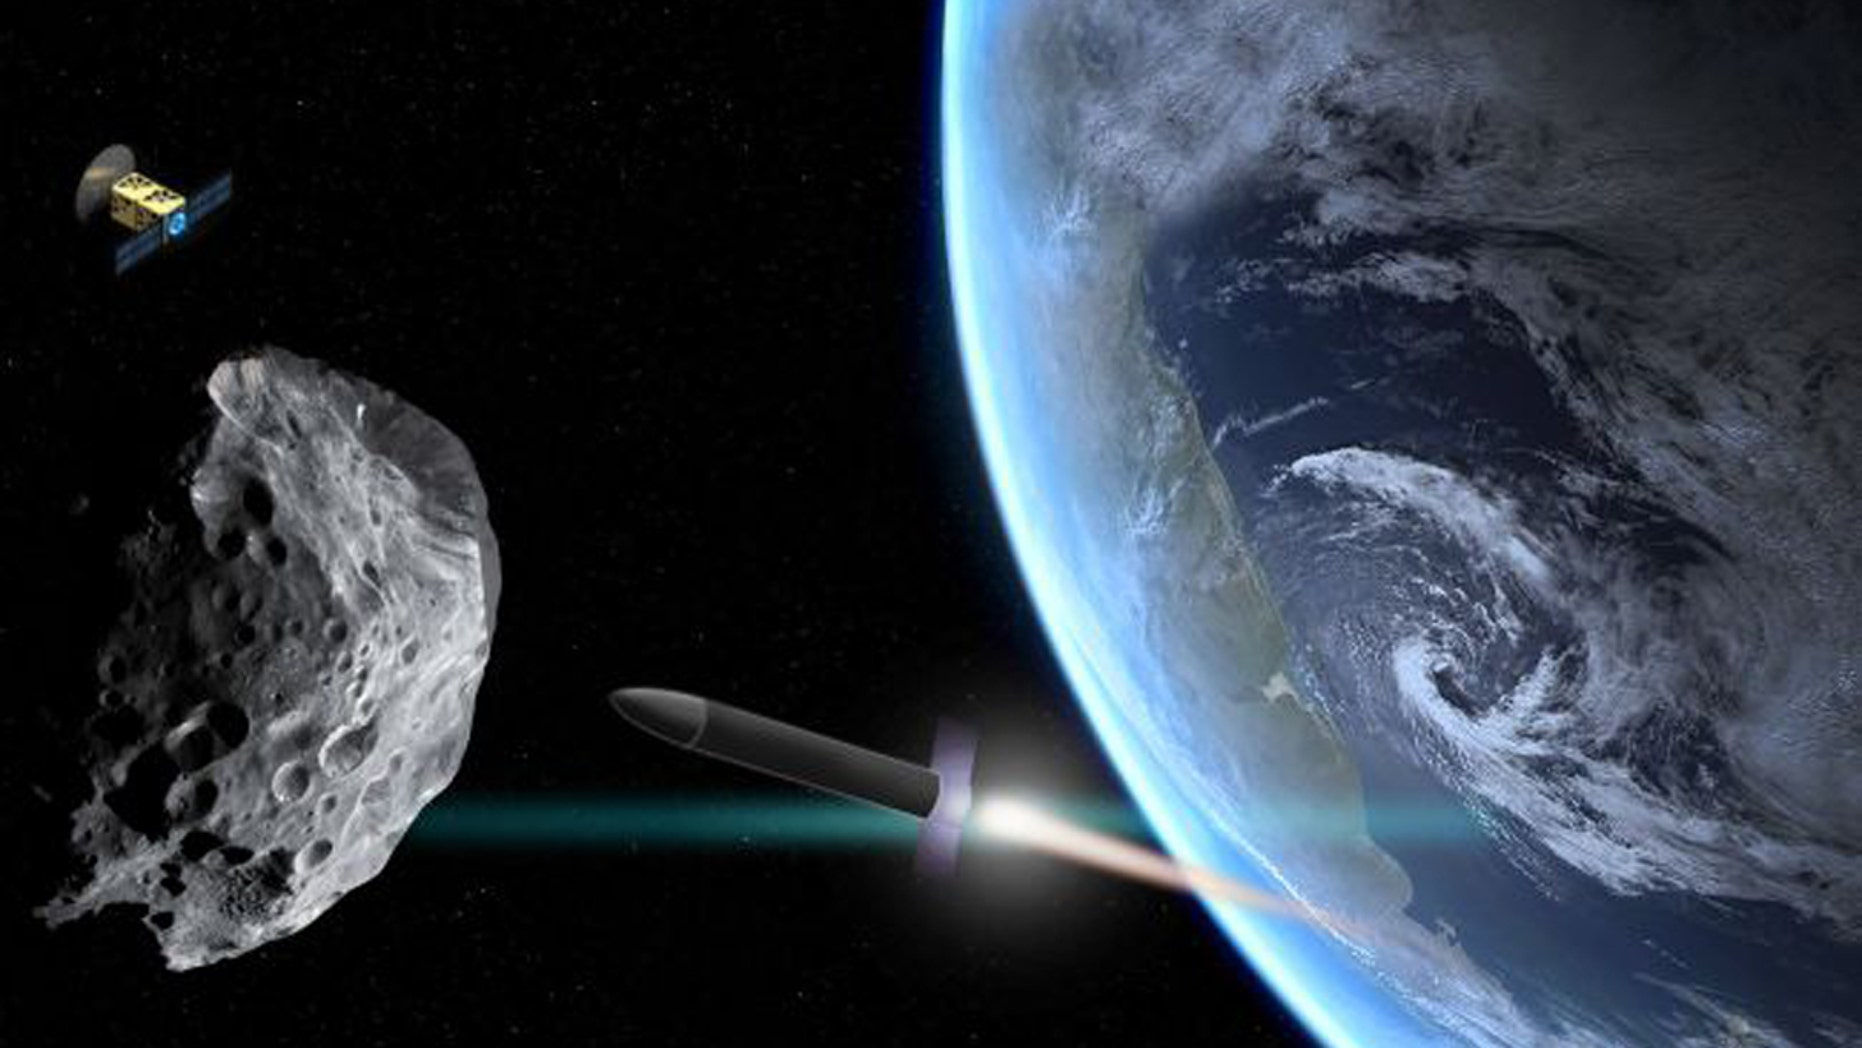 An illustration shows a rocket approaching an asteroid that's drifted too close to Earth. A scout probe orbits nearby. (Credit: Christine Daniloff, MIT)